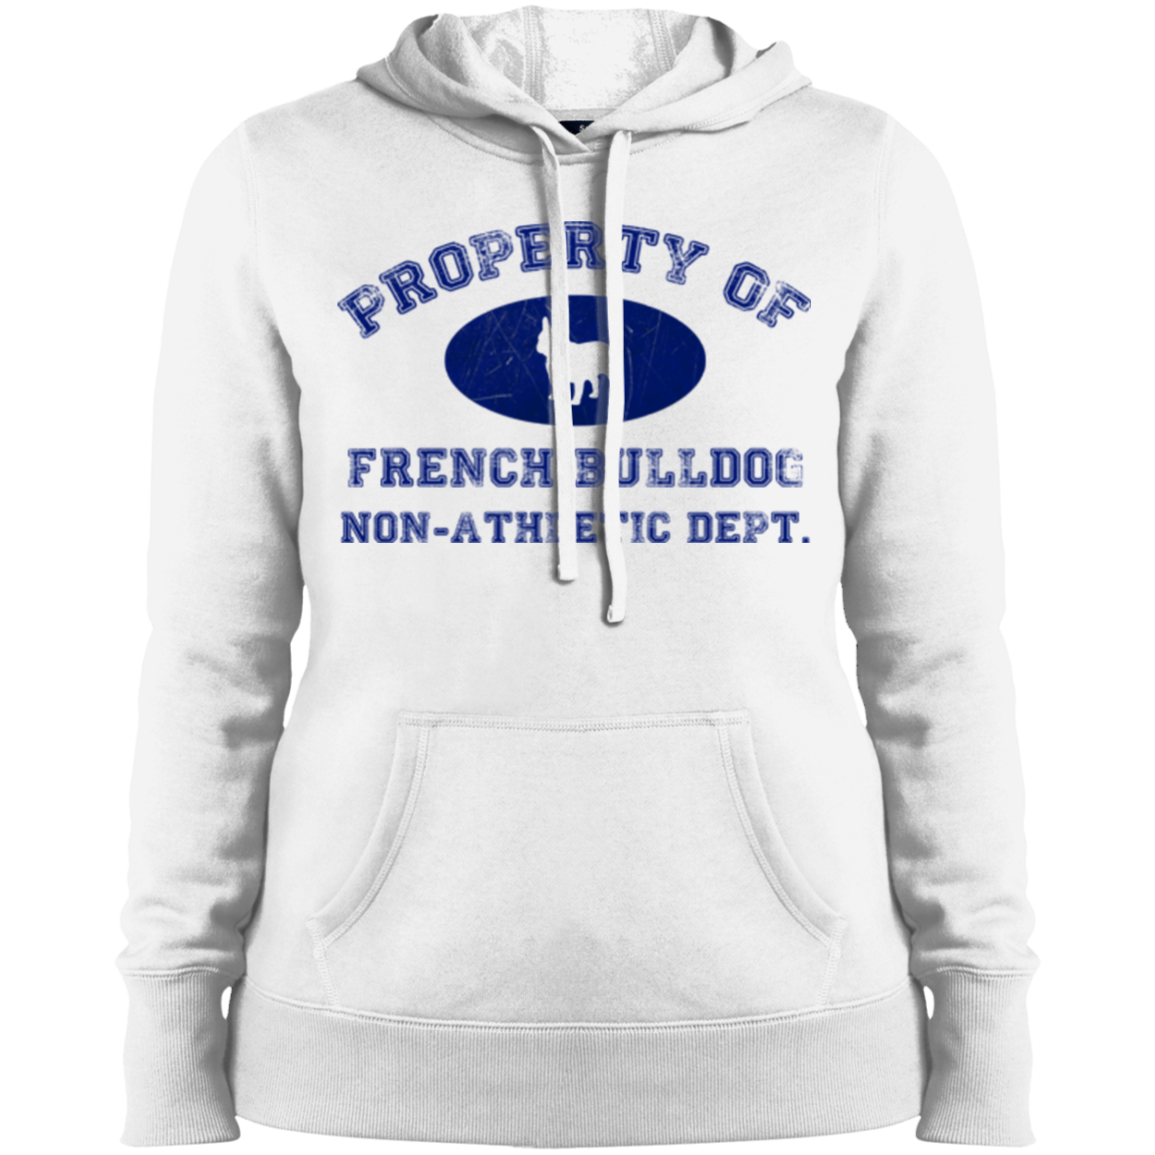 French Bulldog Non-Athletic Dept. Womens Pullover Hoodie - Women's Sweatshirts I Love Frenchie Bulldogs